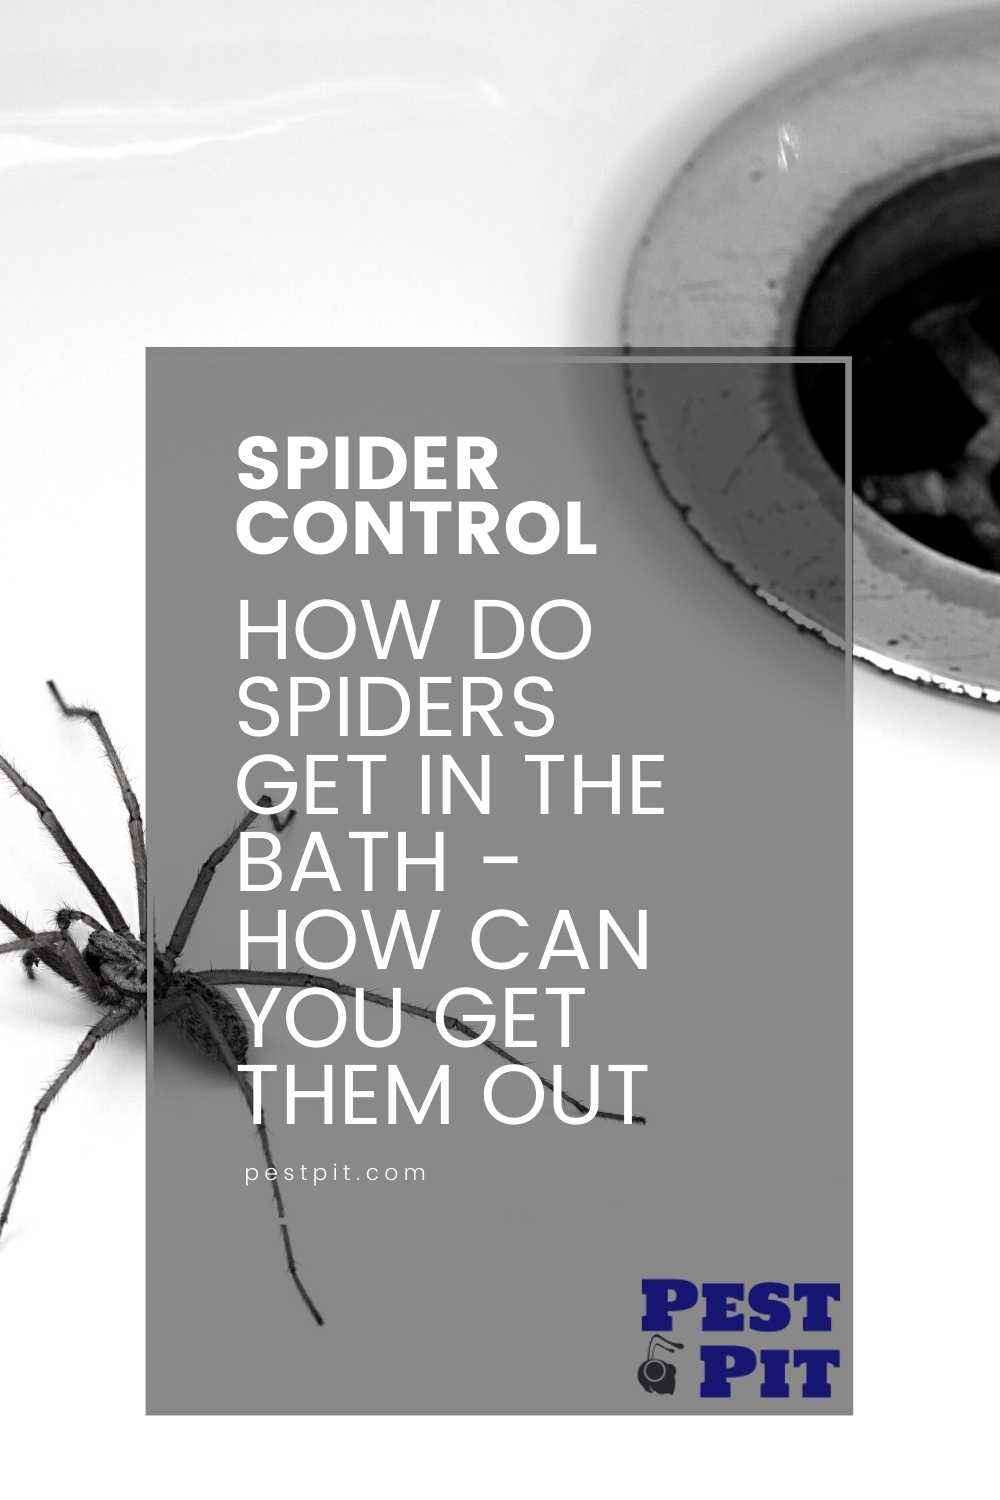 How Do Spiders Get In The Bath - How Can You Get Them Out